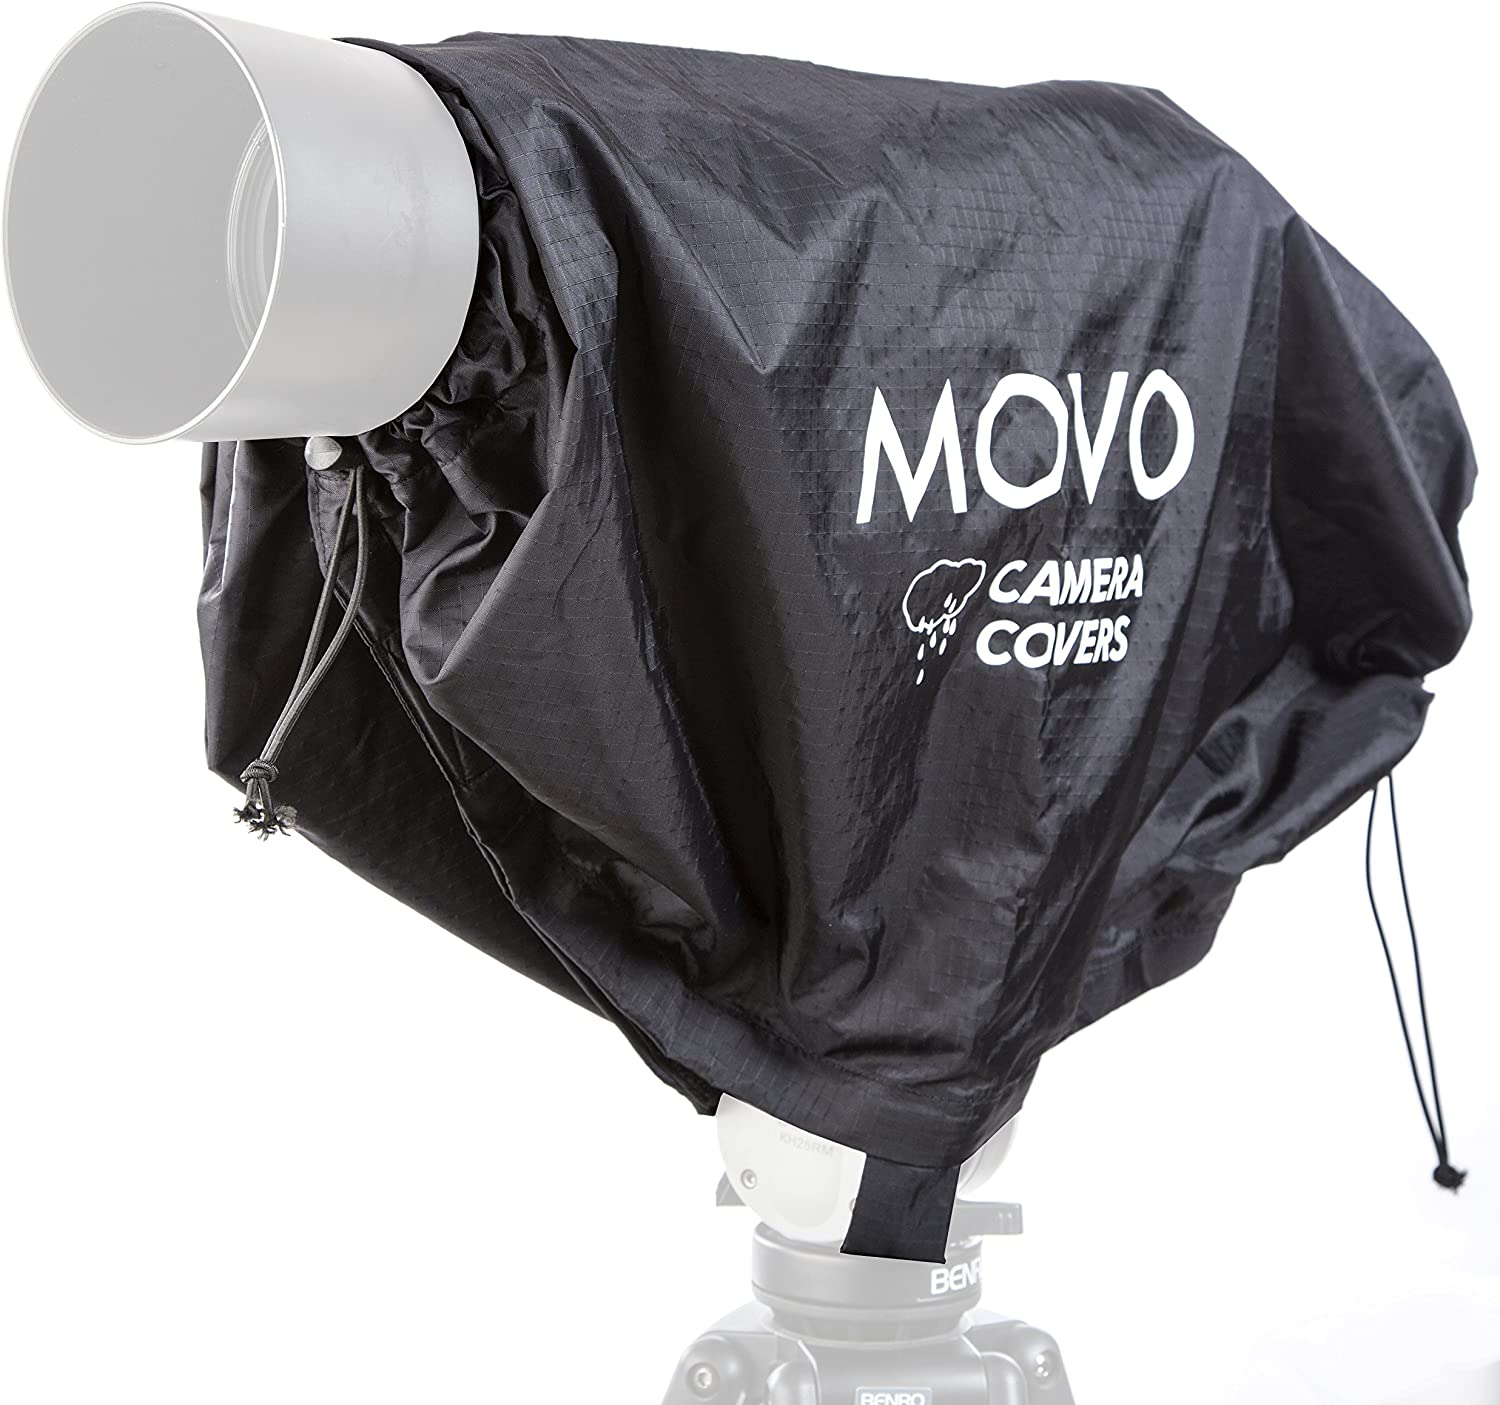 Ranking TOP4 Movo CRC27 Storm Raincover Protector P 5% OFF Cameras Lenses DSLR for